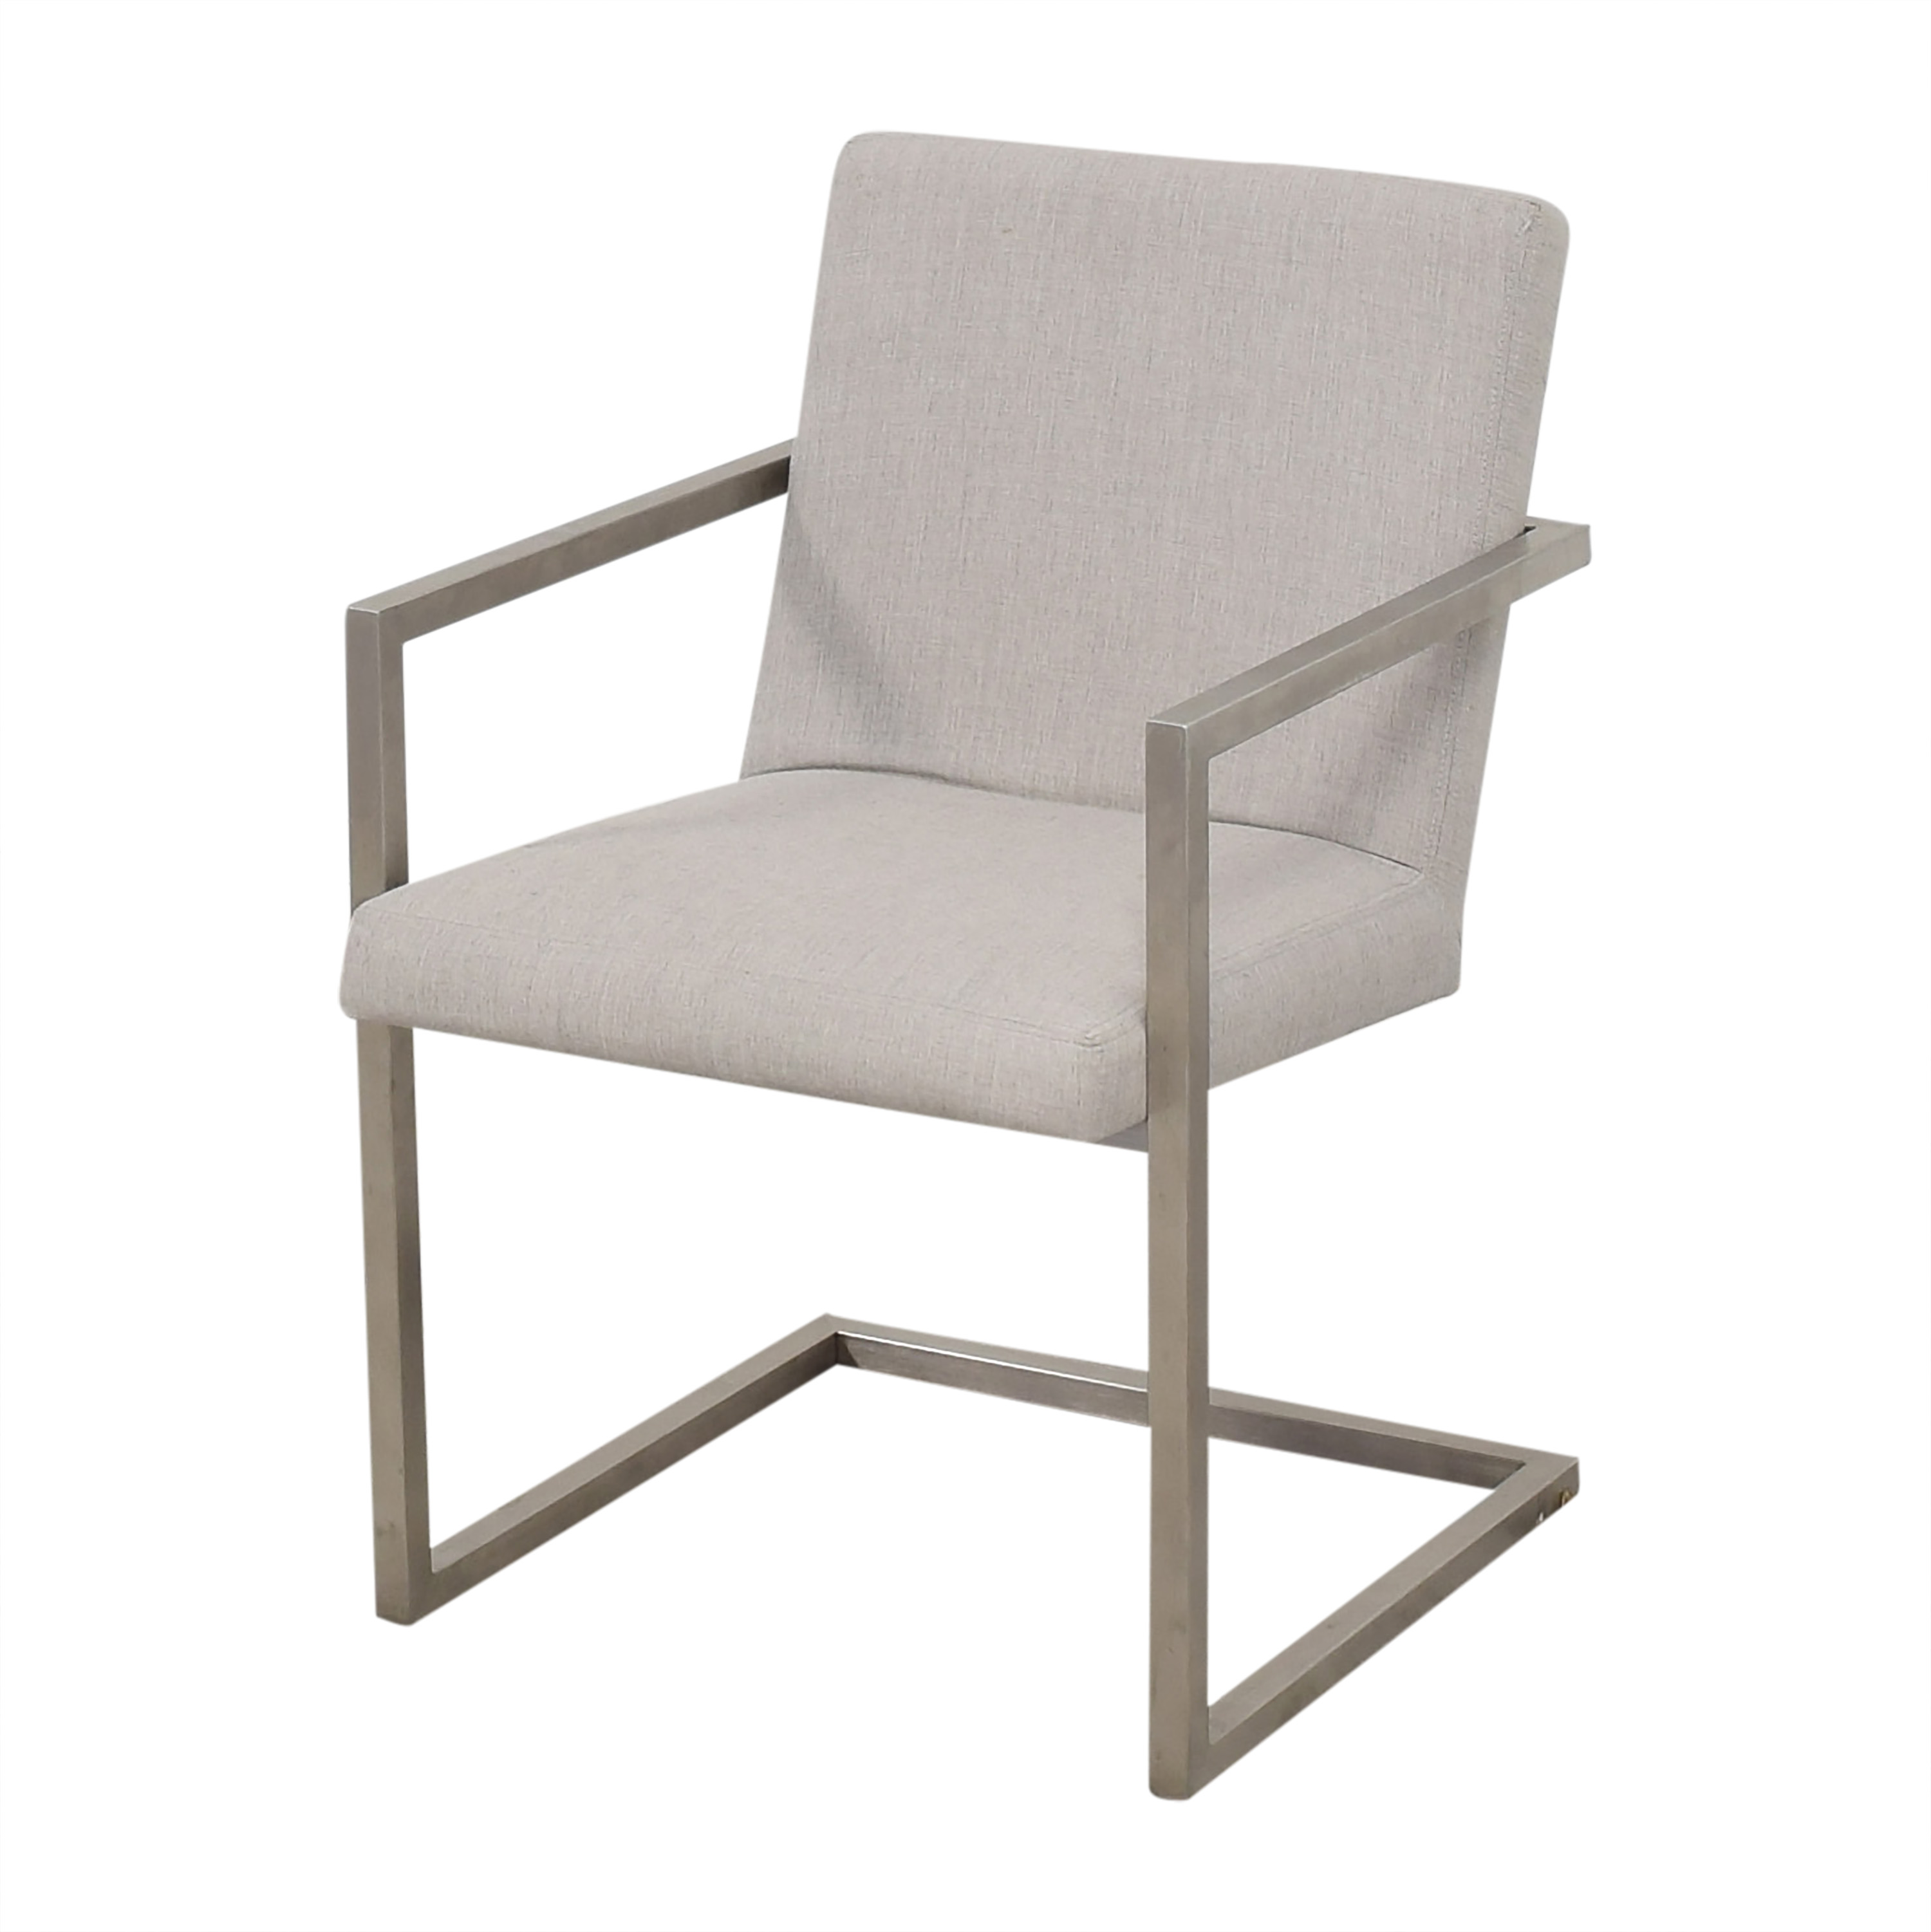 Room & Board Room & Board Lira Dining Arm Chairs Dining Chairs